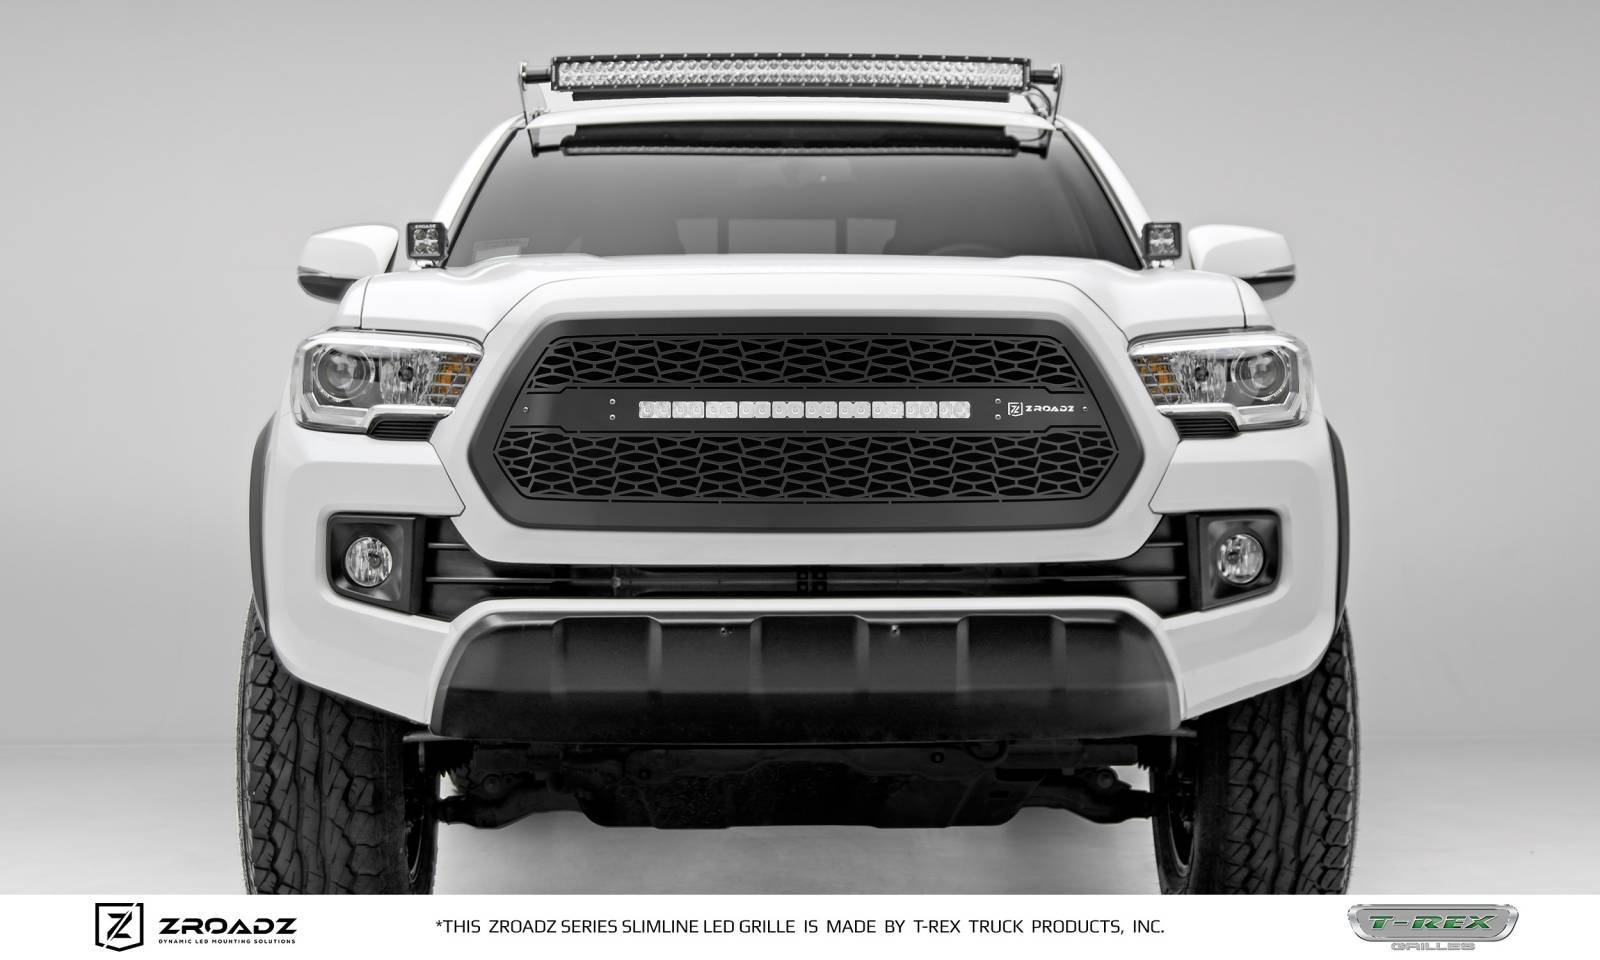 T-REX Grilles - 2016-2017 Toyota Tacoma Main Grille, Including (1) 20 Inch ZROADZ LED Straight Single Row Slim Light Bar - Z319411